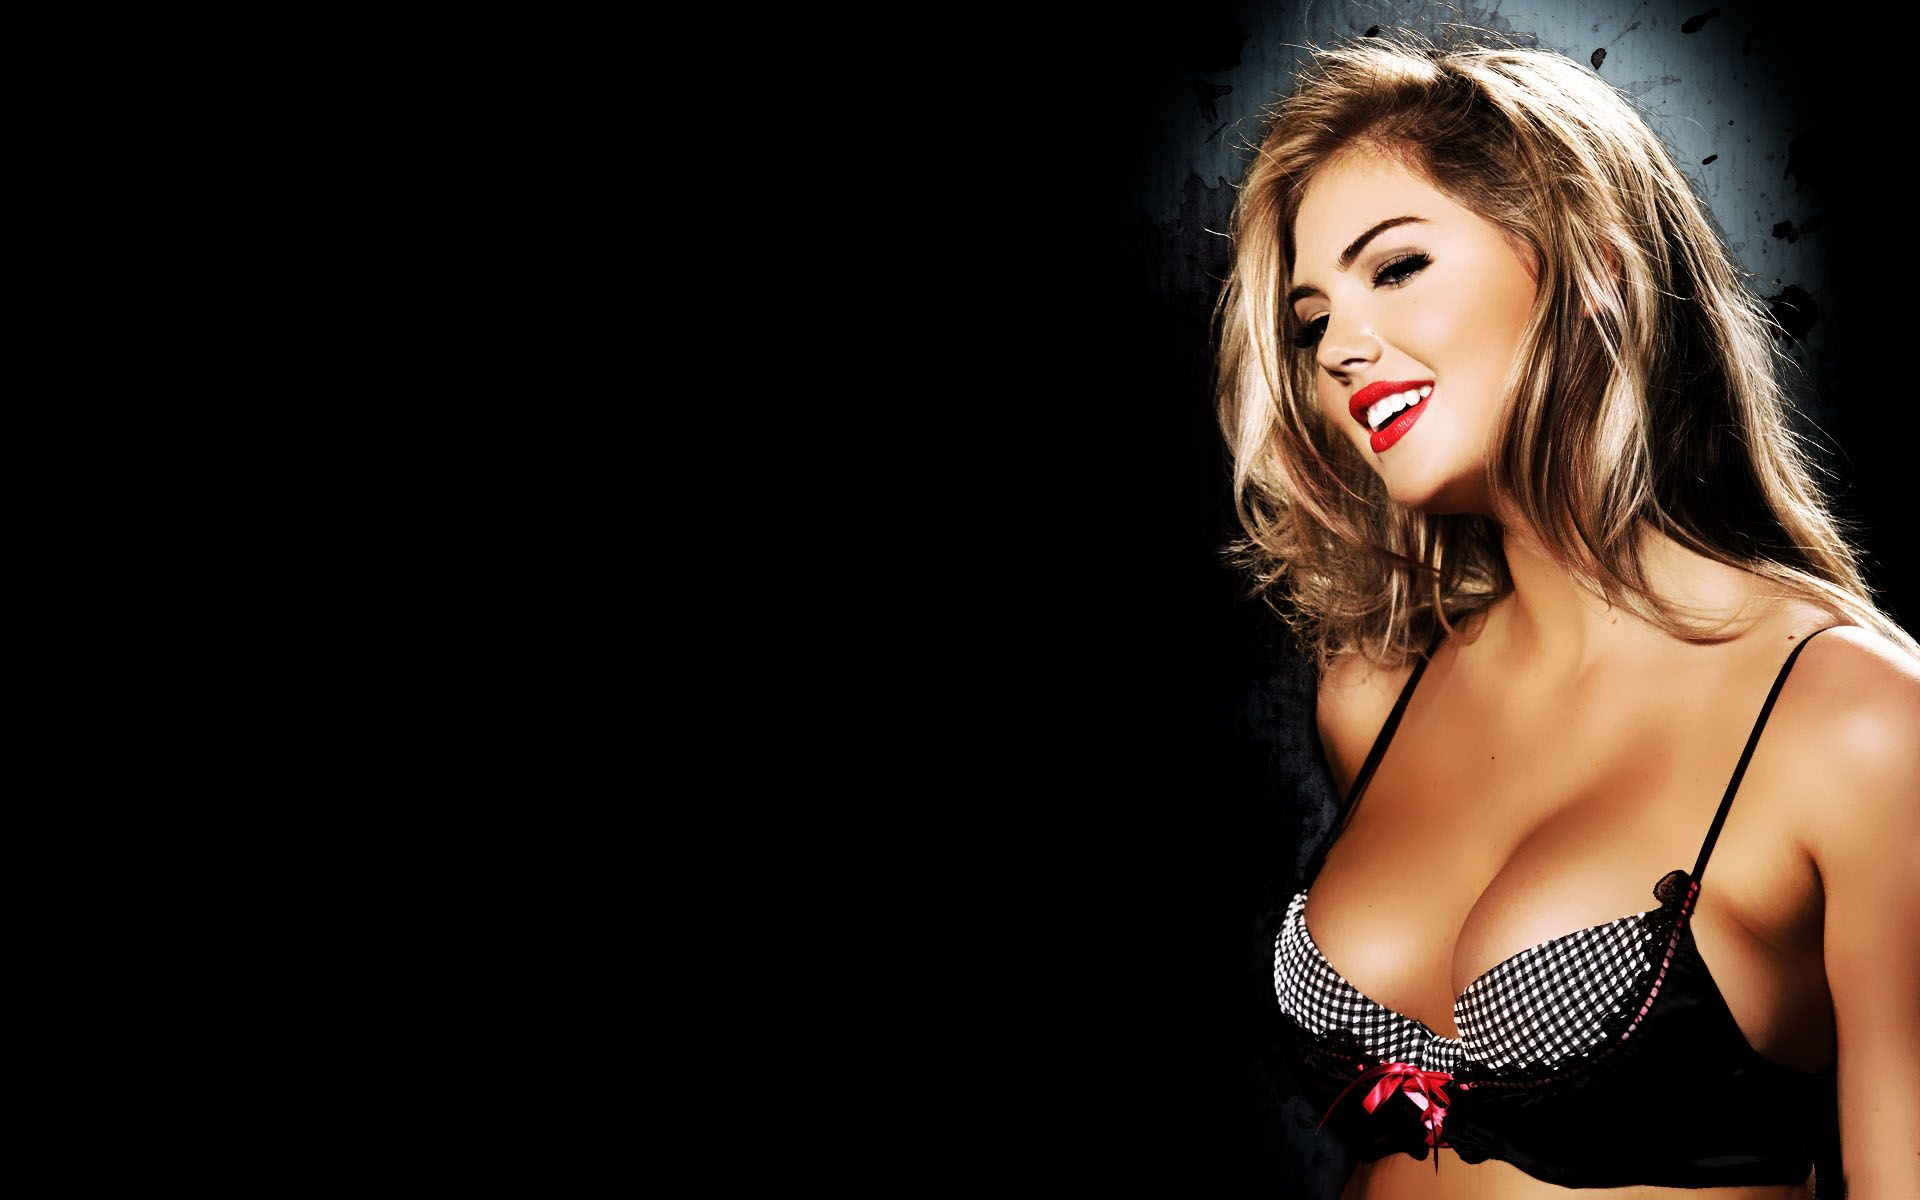 Kate Upton Hd Wallpaper Free Download Wallpaper From